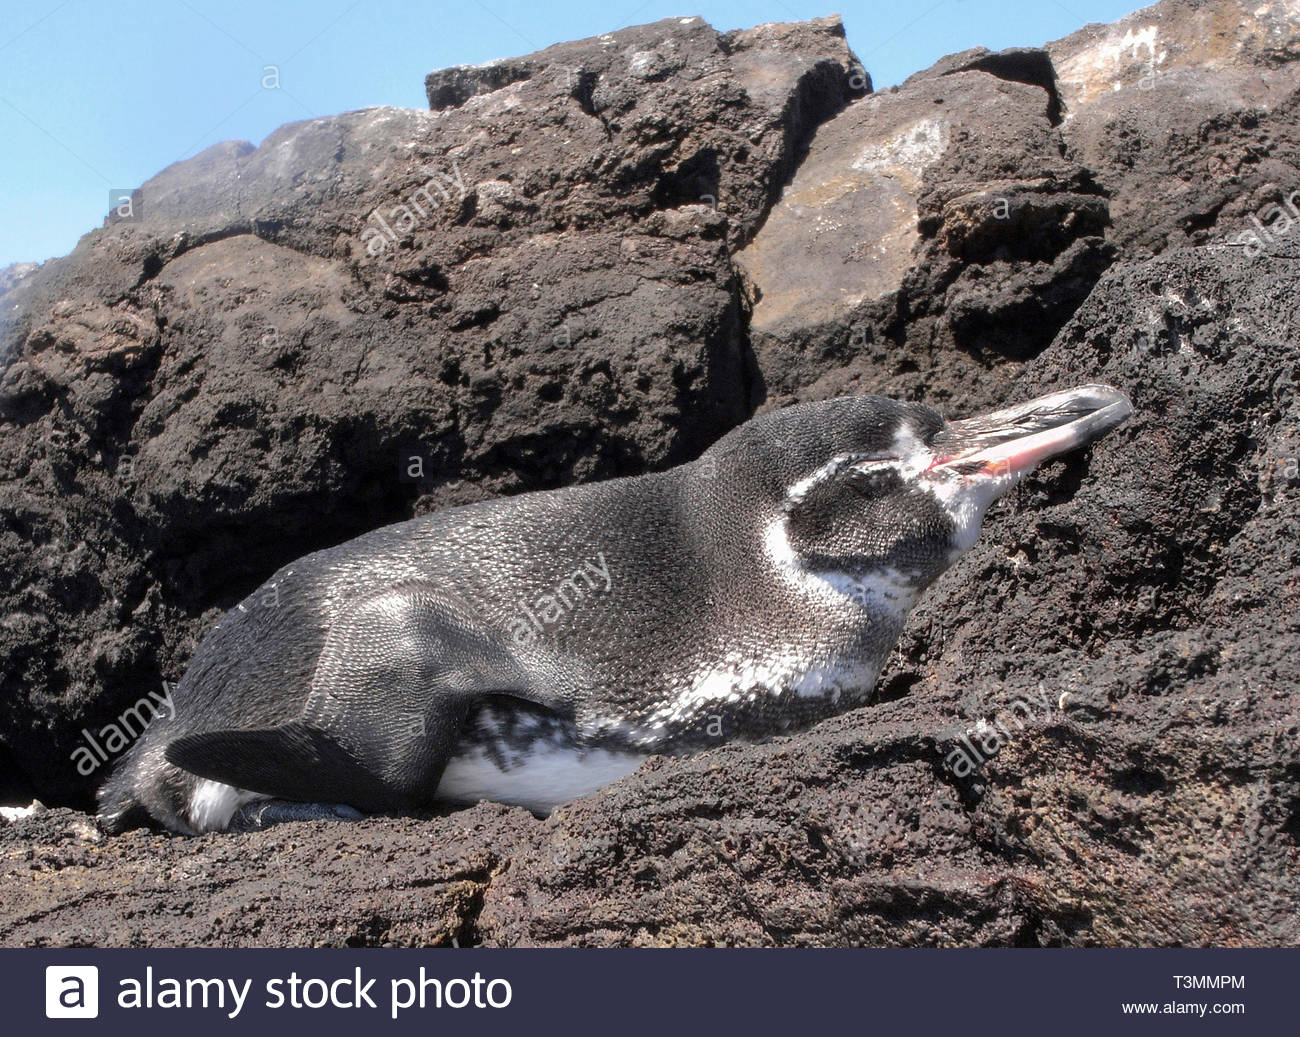 Galapagos Penguin (Spheniscus mendiculus), sleeping at rocky coast, Bartolome island, Galapagos Achipelago, Ecuador Stock Photo